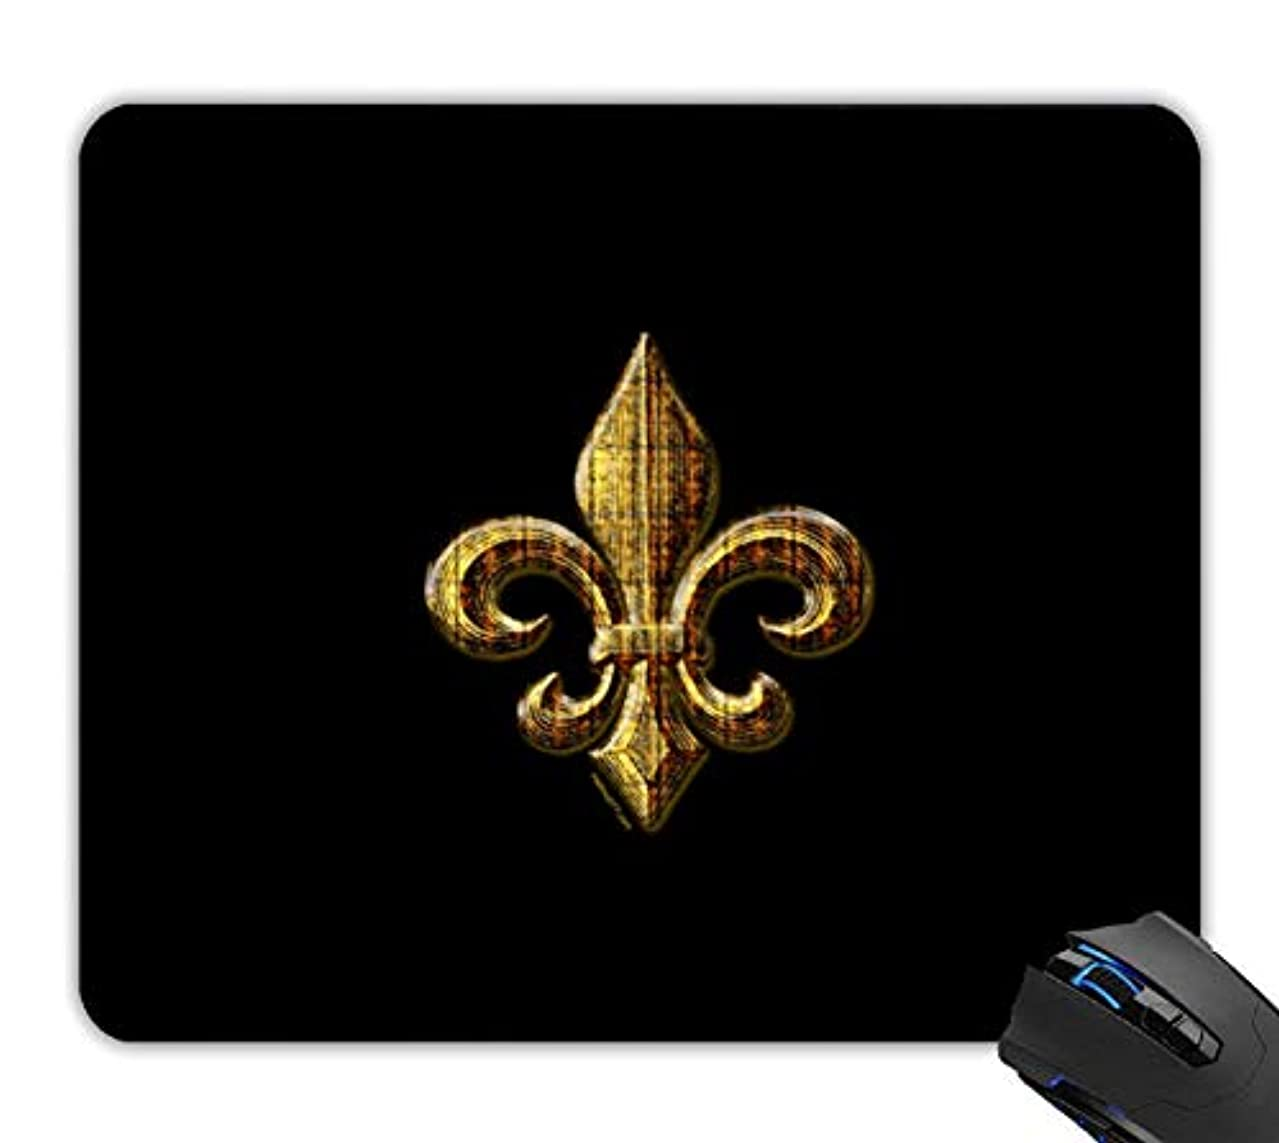 OTTIET Custom Gold Fleur de lis Gaming Mouse Pad 9.5 X 7.9 Inch (240mmX200mmX2mm).Non-Slip Thick Rubber Large Mousepad.